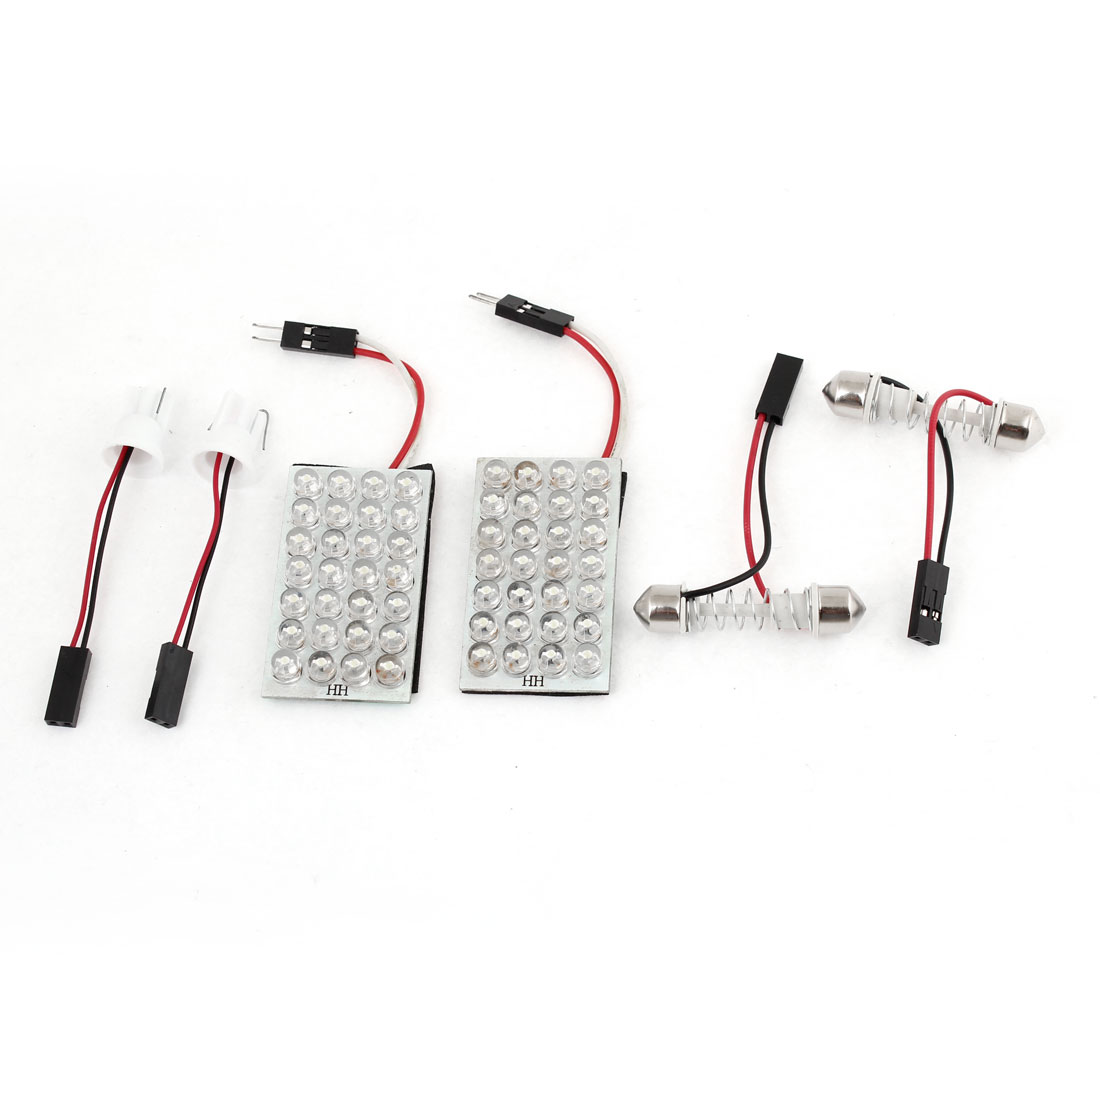 Pair White 28 LED Car Interior Dome Light Bulb w T10 Festoon Base Adaper 12V